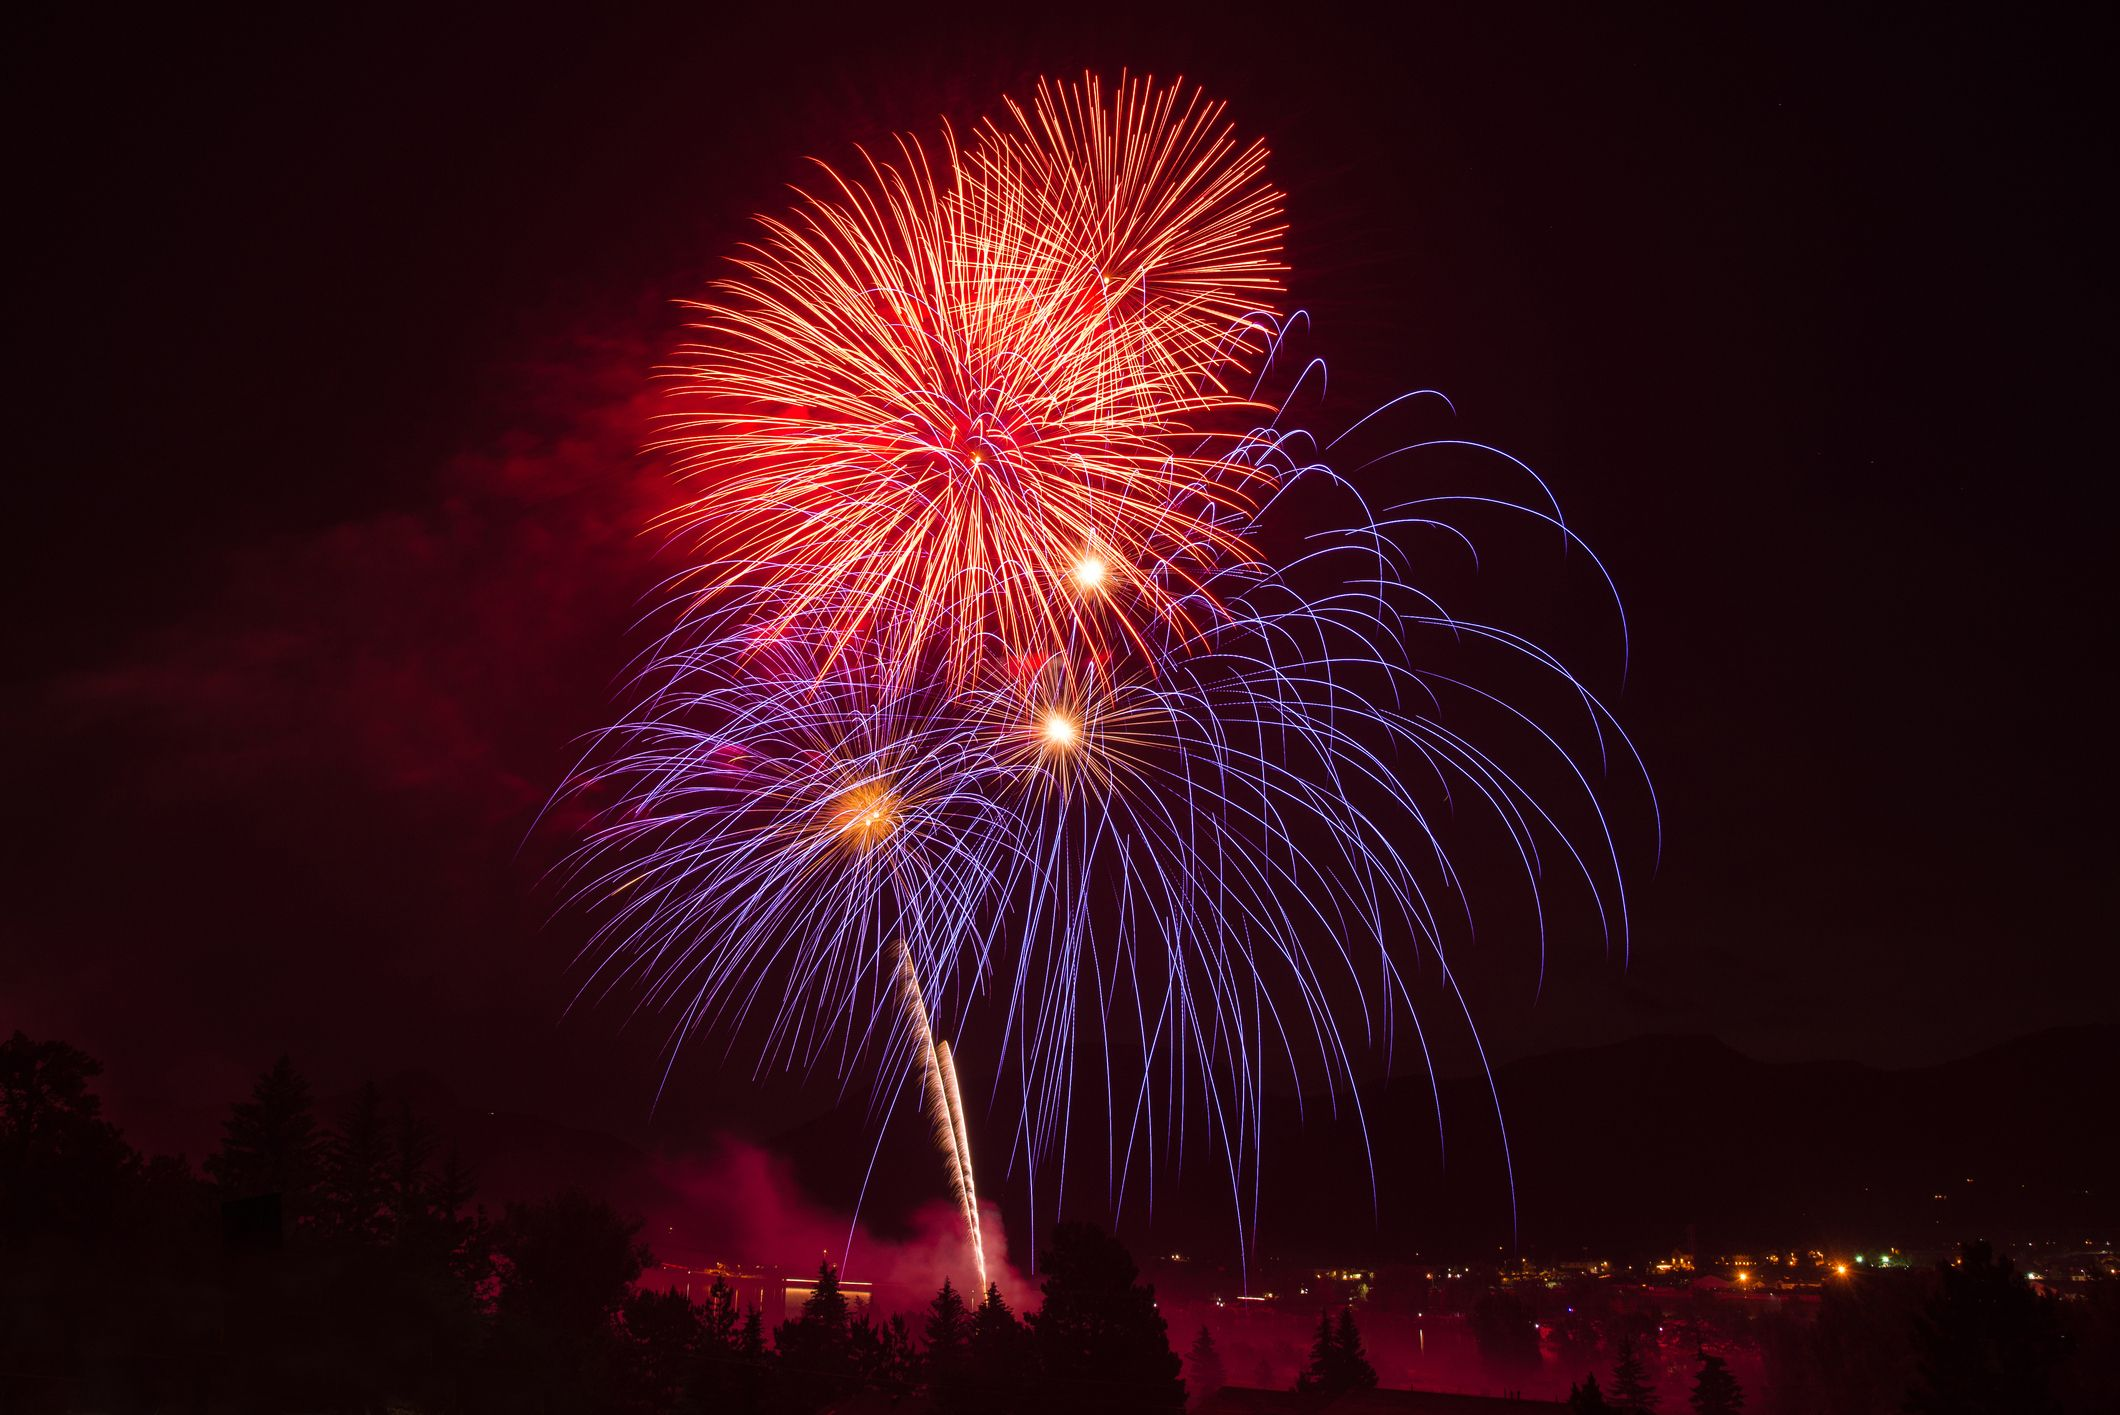 Where to Watch Fireworks Near Me - 20 Best Places to Watch